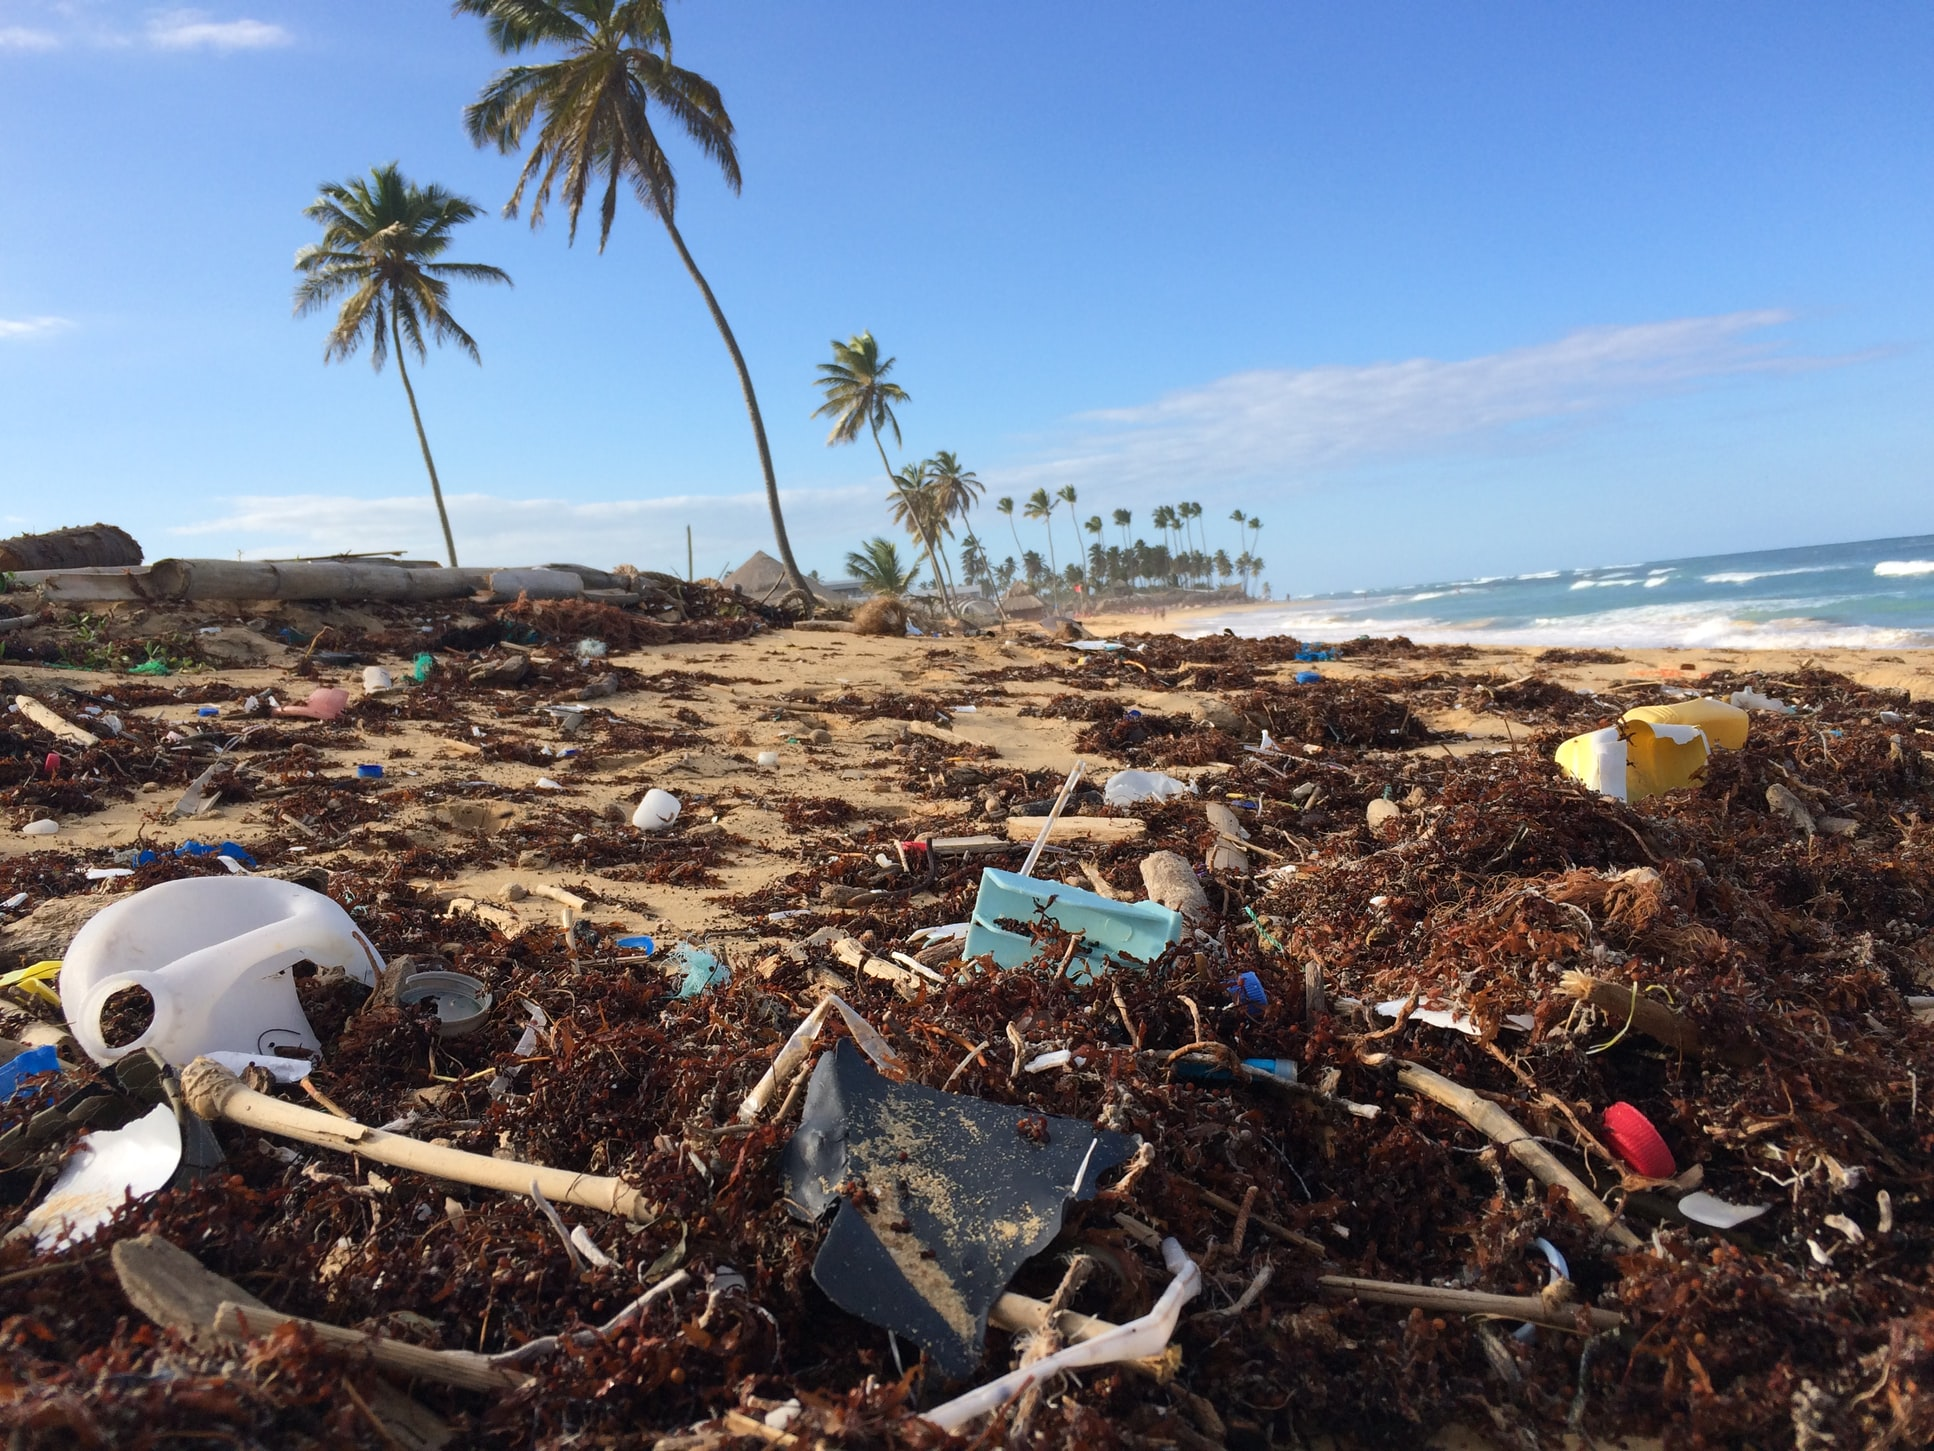 A beach with plastic pollution and litter in the foreground, palm trees in the distance.